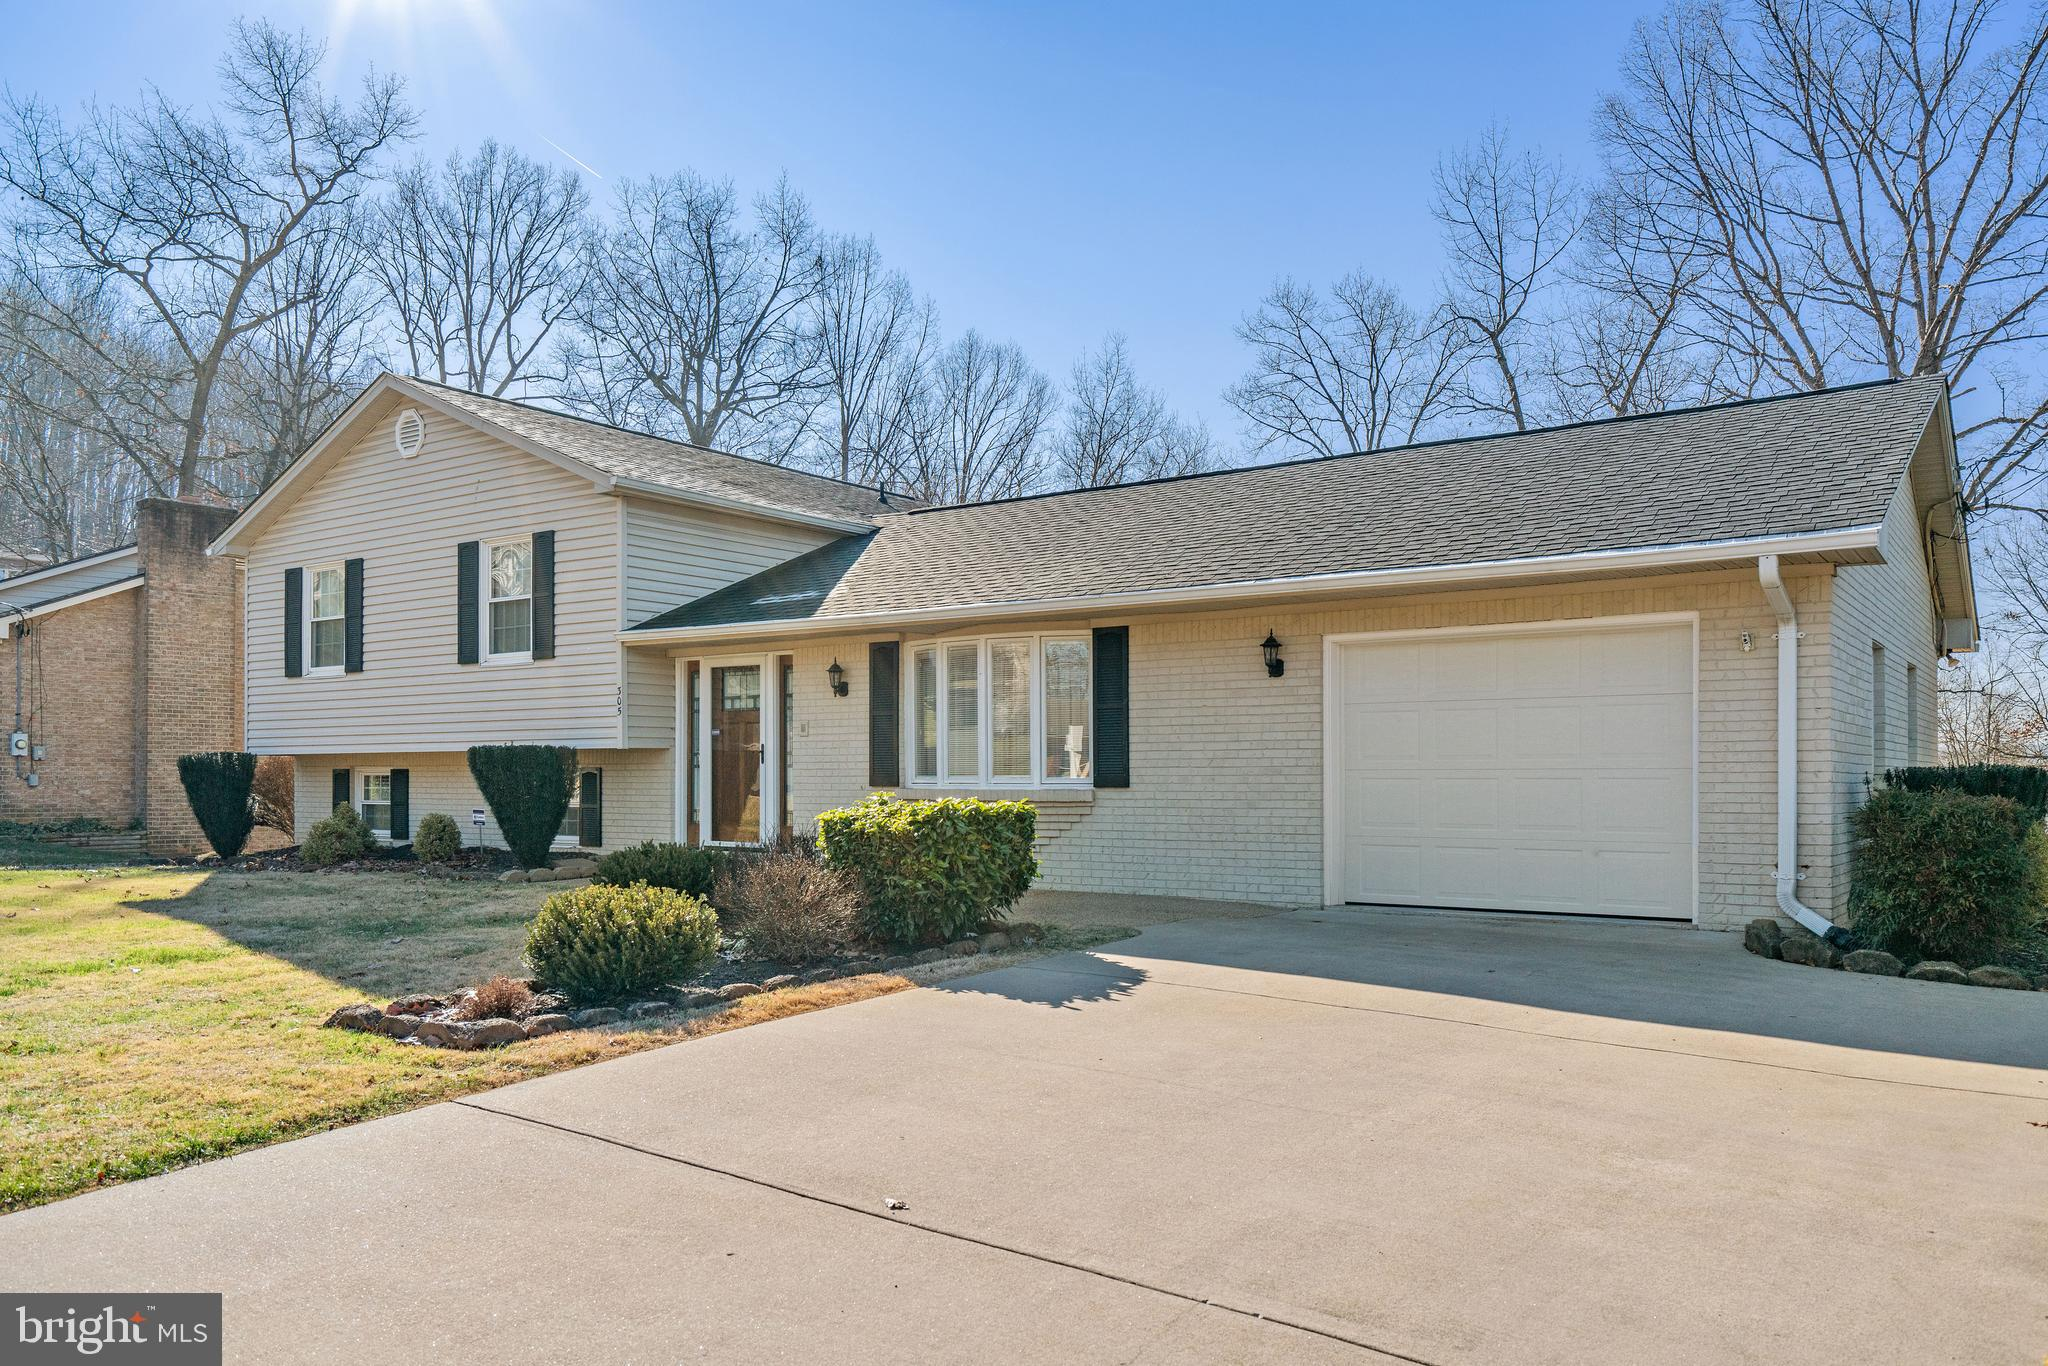 Welcome Home to 305 S Charles St, Front Royal VA.  This Beautiful Split Level Home Includes 3 Bedrooms, 3 Full Baths, Large Kitchen with Island and Granite Countertops, Dining Room, Living Room, Large Family / Recreation Room with Wood Burning Fireplace on Lower Level Along with Walkout Access to Large Backyard with Outdoor Shed.  This Home has 2,648 Sq. Ft. of Finished Living Space and Includes Hardwood Floors on Main and Upper Level; Finished Basement with Laundry Area and a 2nd Laundry Area on the Main Floor located in the Oversized 1 Car Garage.    This Home is in the Colonial Park Subdivision in beautiful Front Royal VA and Perfectly Situated on .30 Acres with Large Back Yard; Short Distance to Shopping, Restaurants, Outdoor Activities and Scenic Blue Ridge Mountains (North Entrance).  Easy Commute / Carpool / Vanpool to Northern Virginia and Washington DC using I-66.